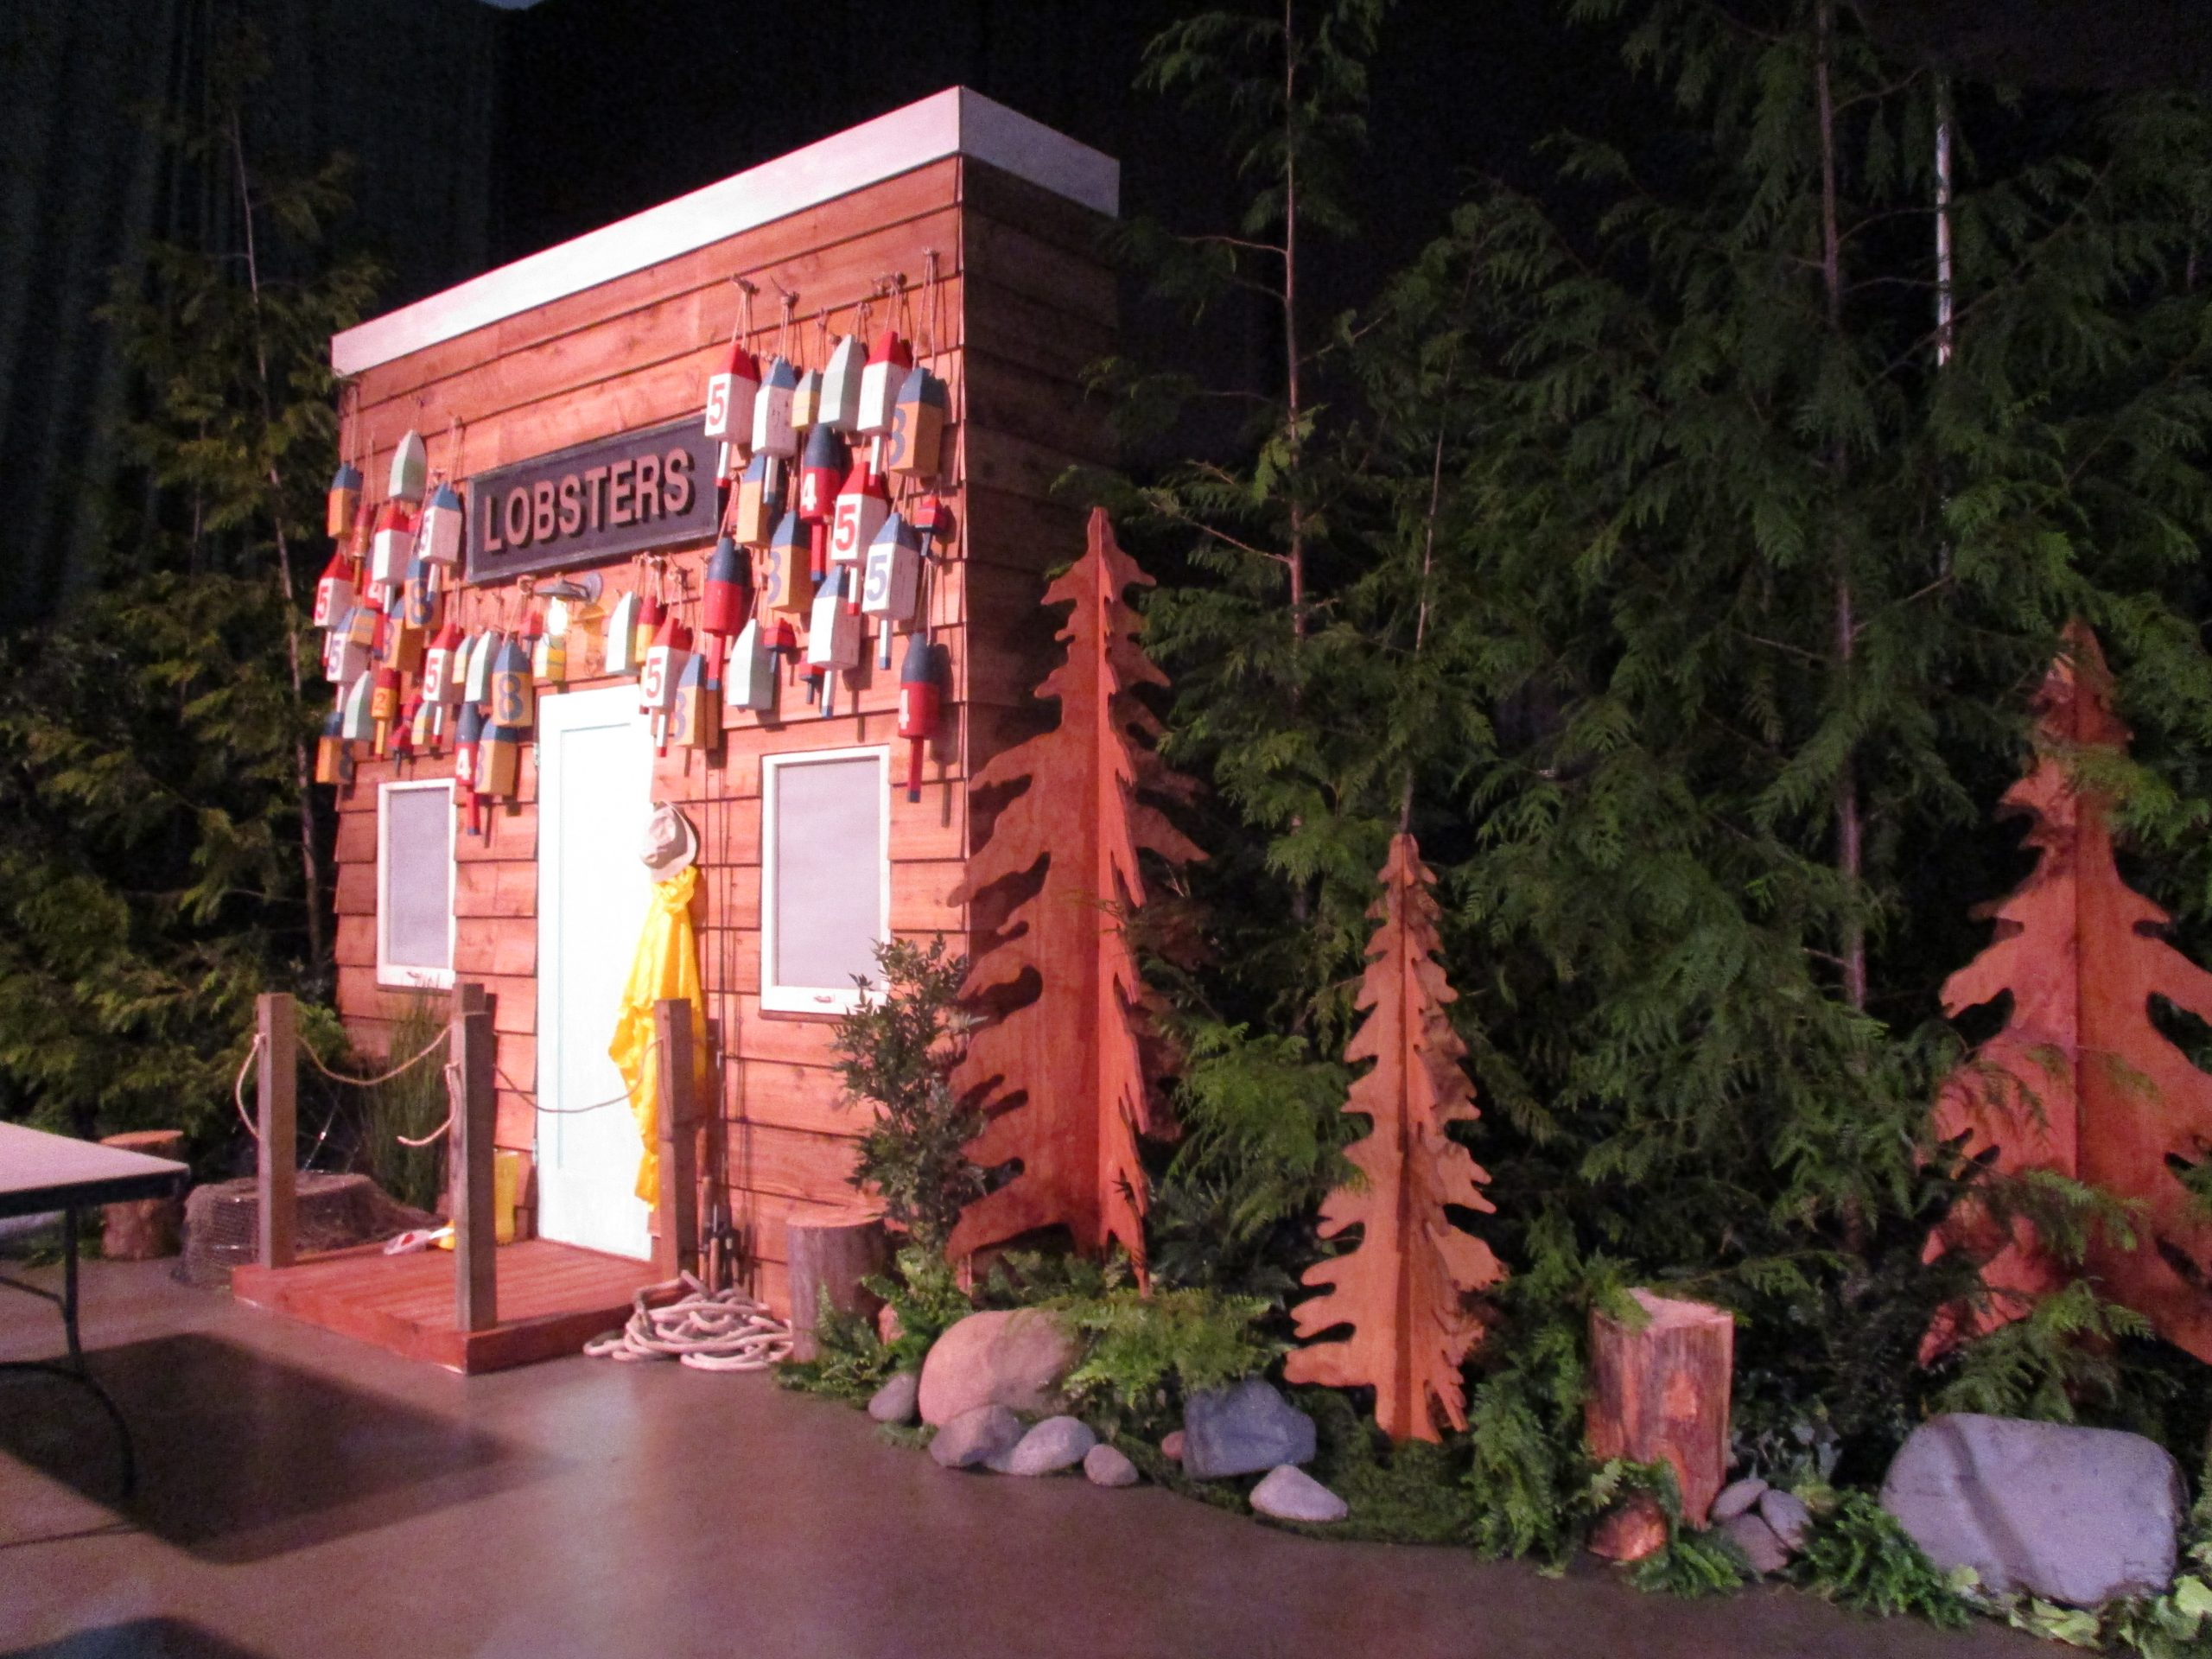 Live evergreen vignette for life like woodsy display with cabin props and wood cut out trees by client